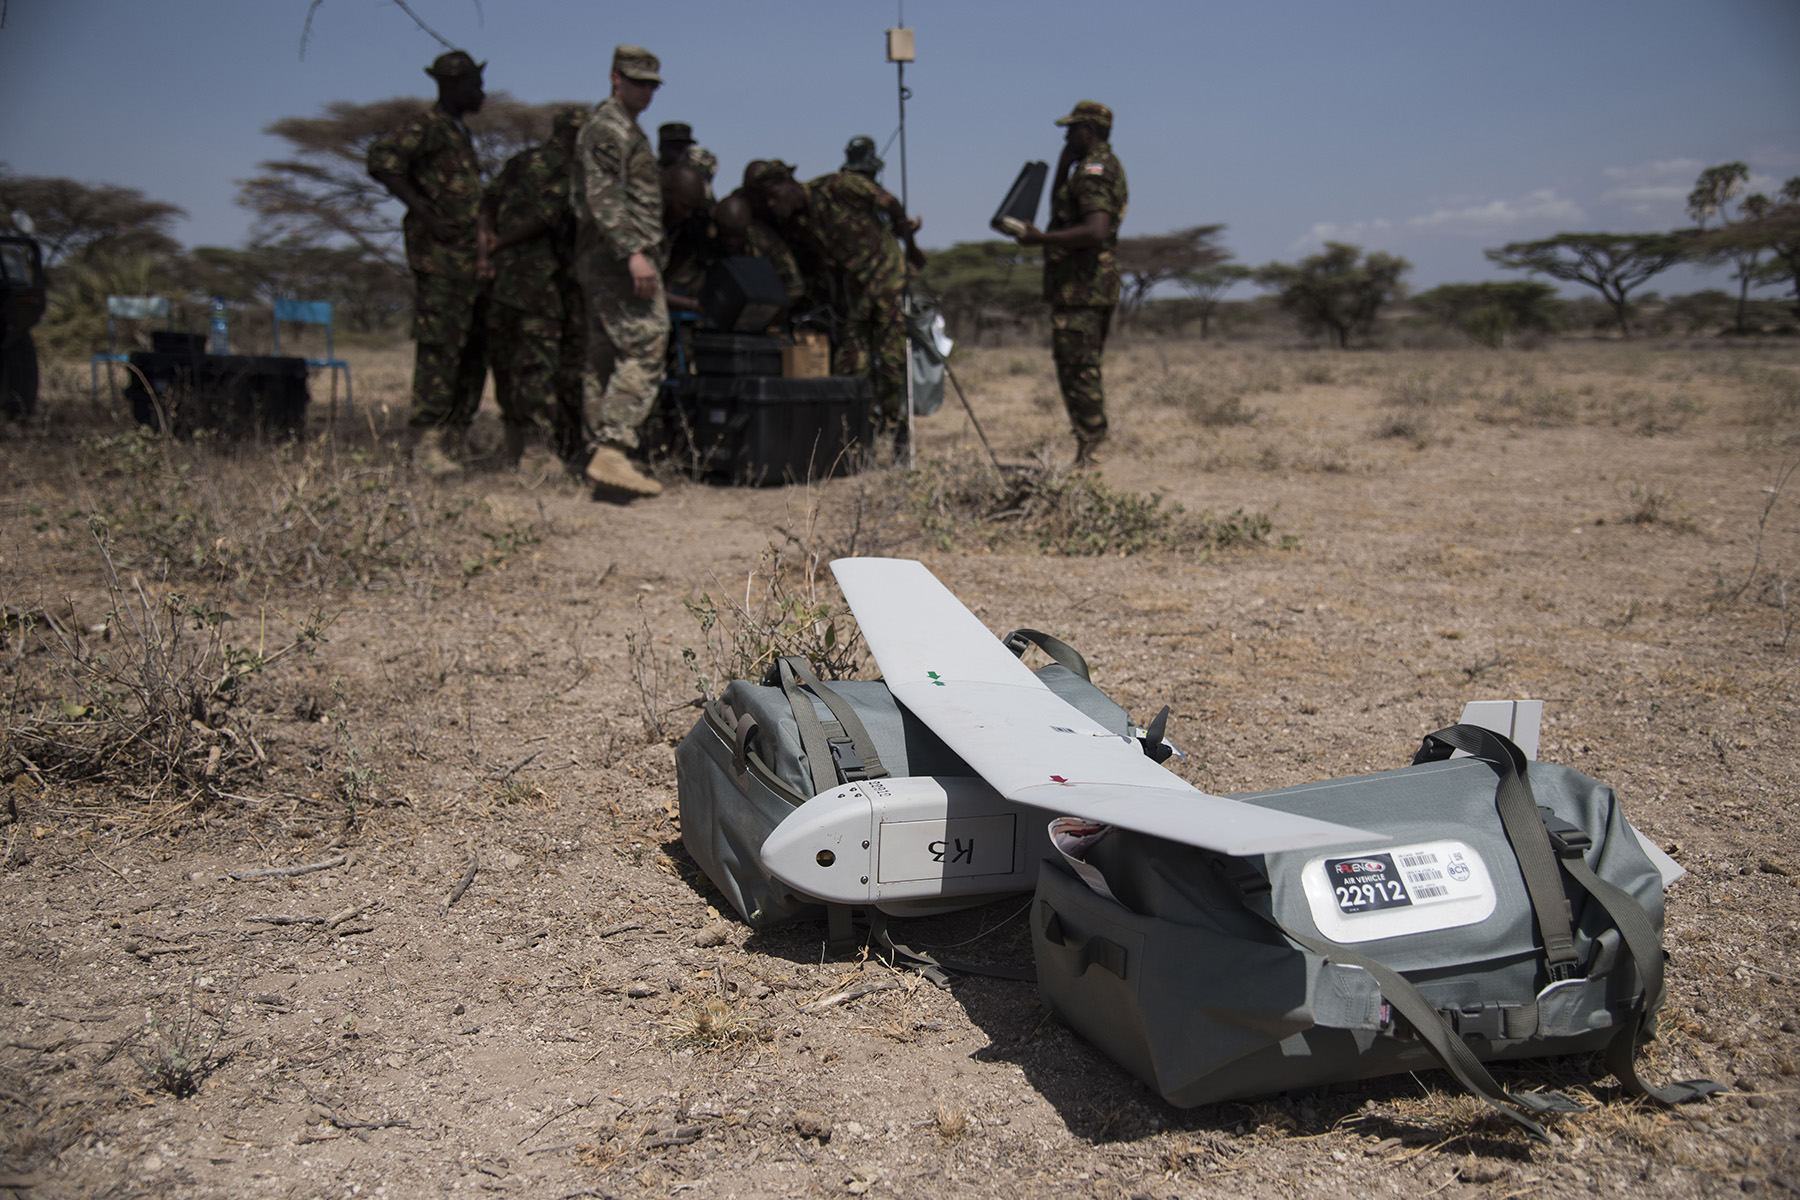 U.S. Army Soldiers of the 1st Battalion, 124th Infantry Regiment assigned to Combined Joint Task Force-Horn of Africa, and the Kenya Defense Forces Military Intelligence Battalion, set up a computer system in preparation to fly the AeroVironment RQ-11 Raven, an unmanned aerial vehicle, Sept. 13, 2016, at a Kenyan training facility. The 1/124th Inf. Rgt. Soldiers provided basic training on assembly, disassembly, repair, and preventative maintenance in regard to basic mission planning and advanced flight plans for the Raven. (U.S. Air Force photo by Staff Sgt. Tiffany DeNault)